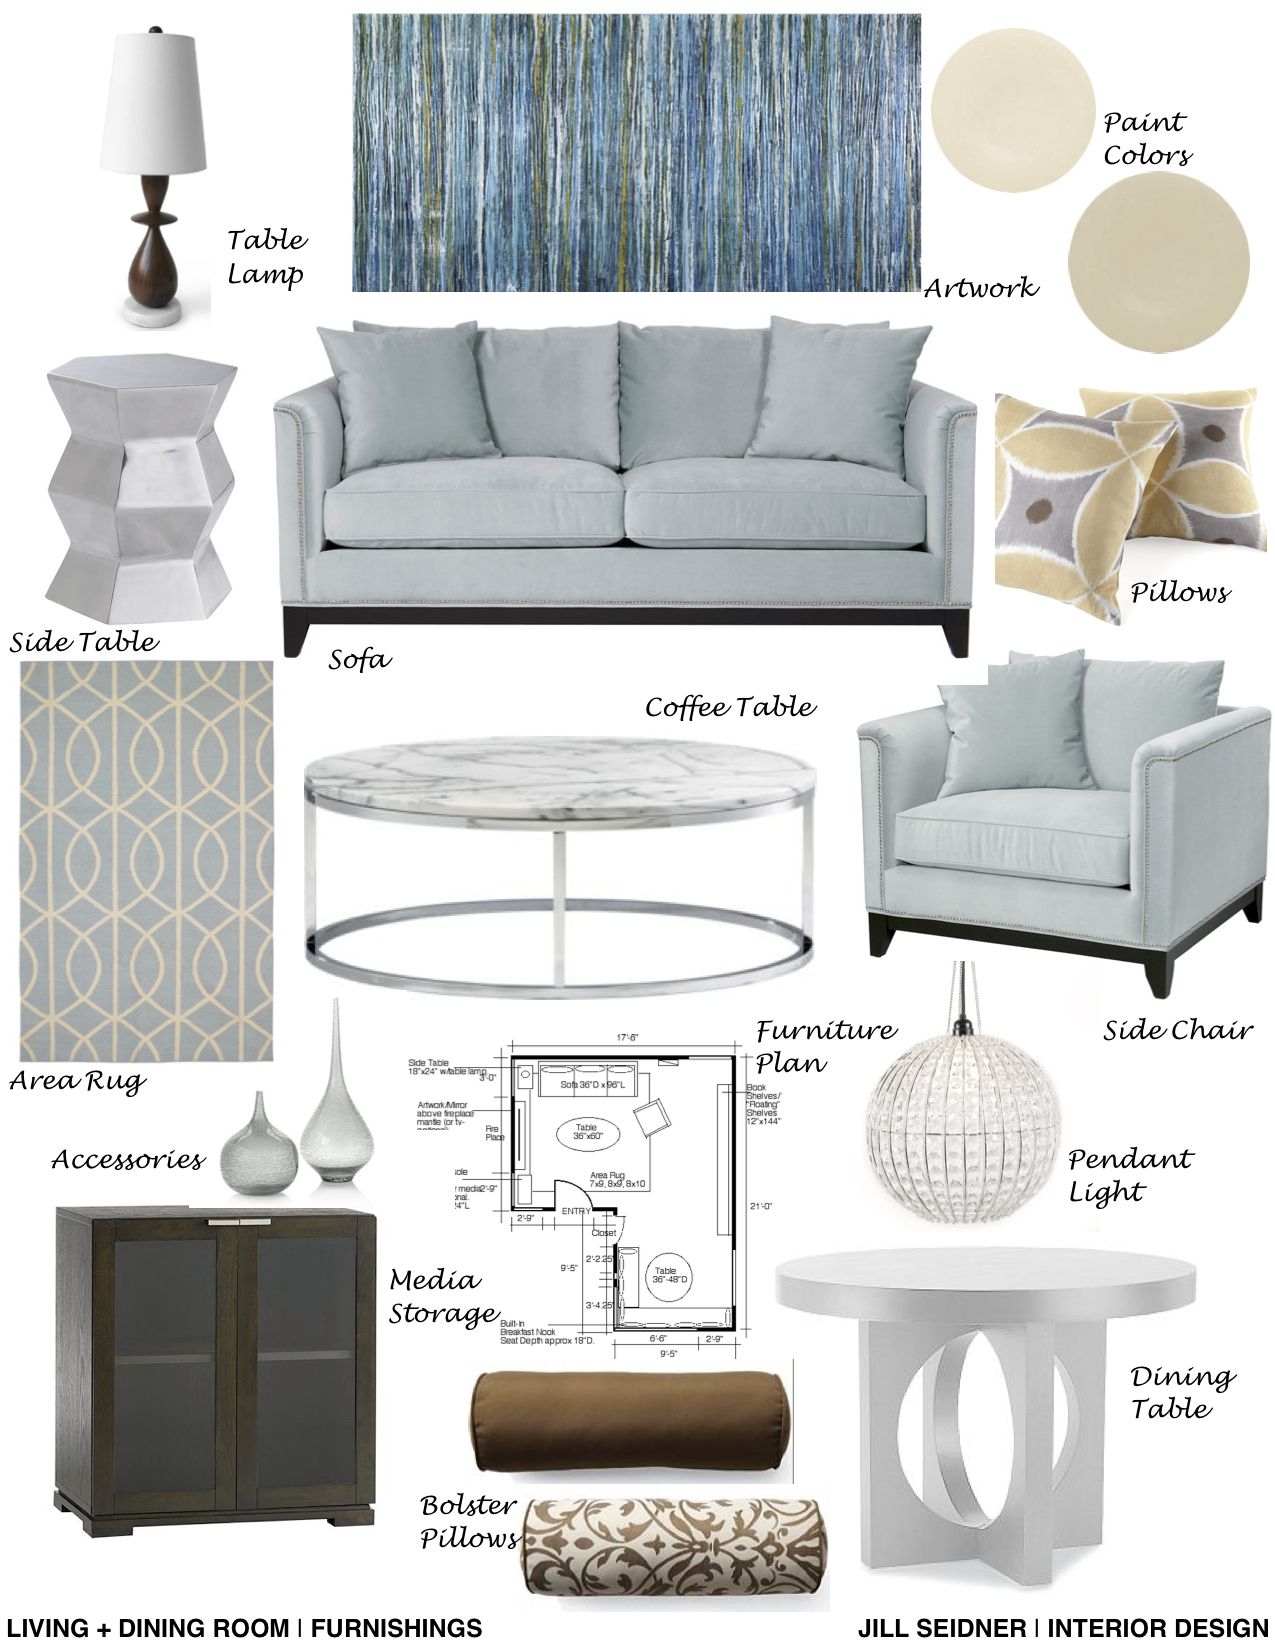 Design Interieur Concept Living Room Furnishings Concept Board Jill Seidner